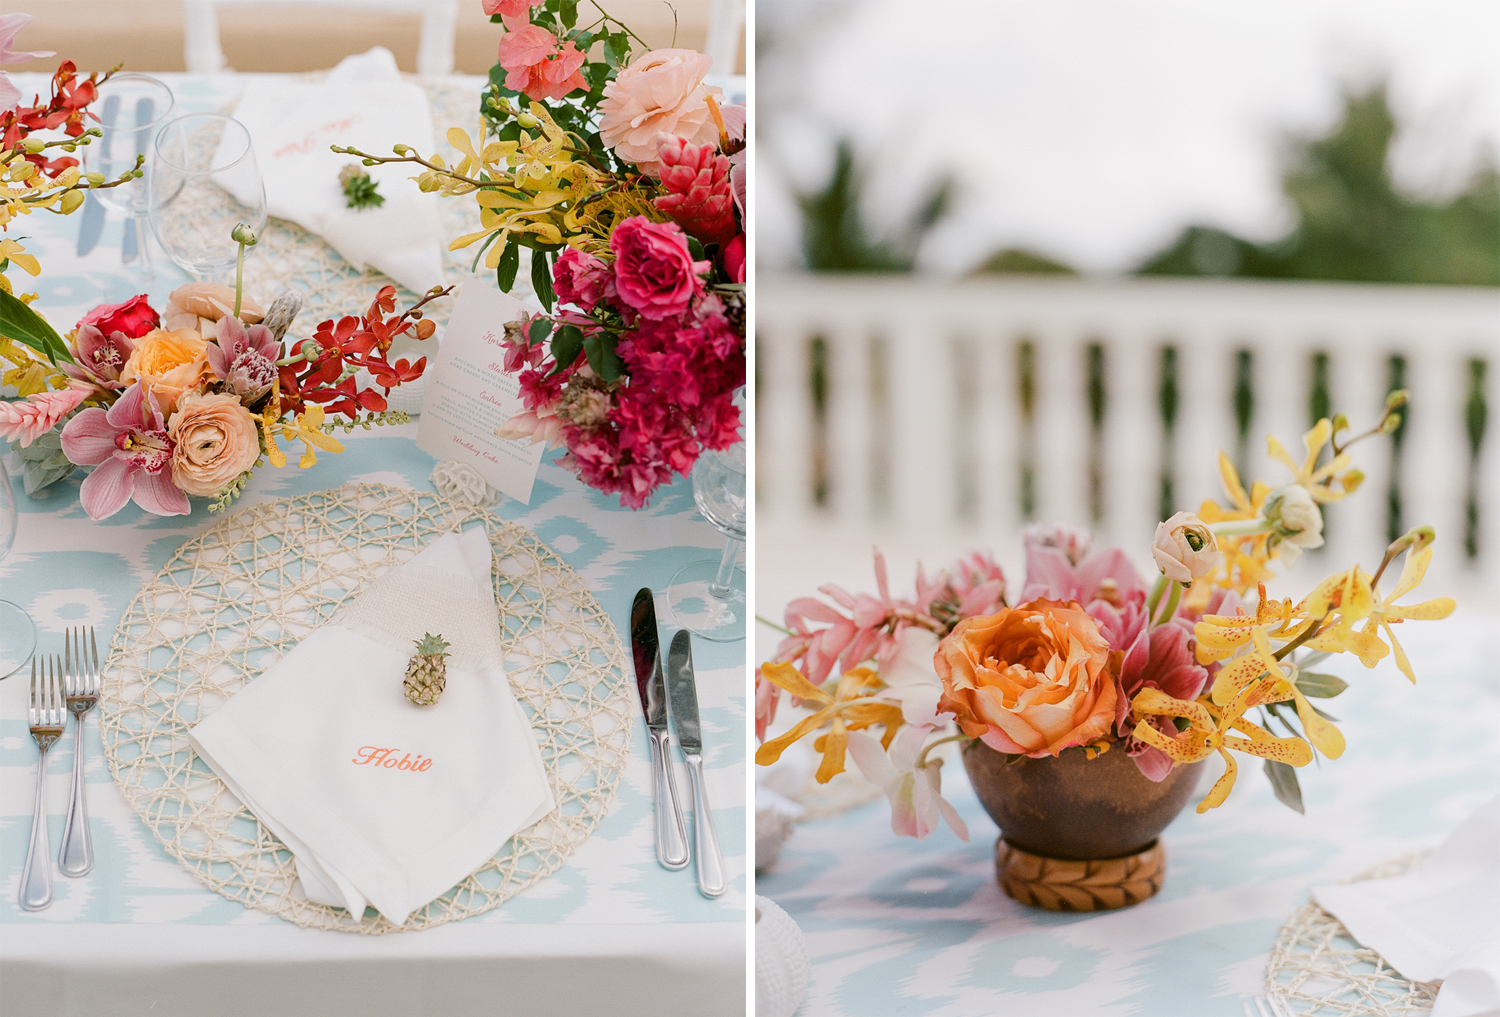 Wicker placemats and tropical blooms on an ikat tablecloth - a Montego Bay wedding reception; Sylvie Gil Photography